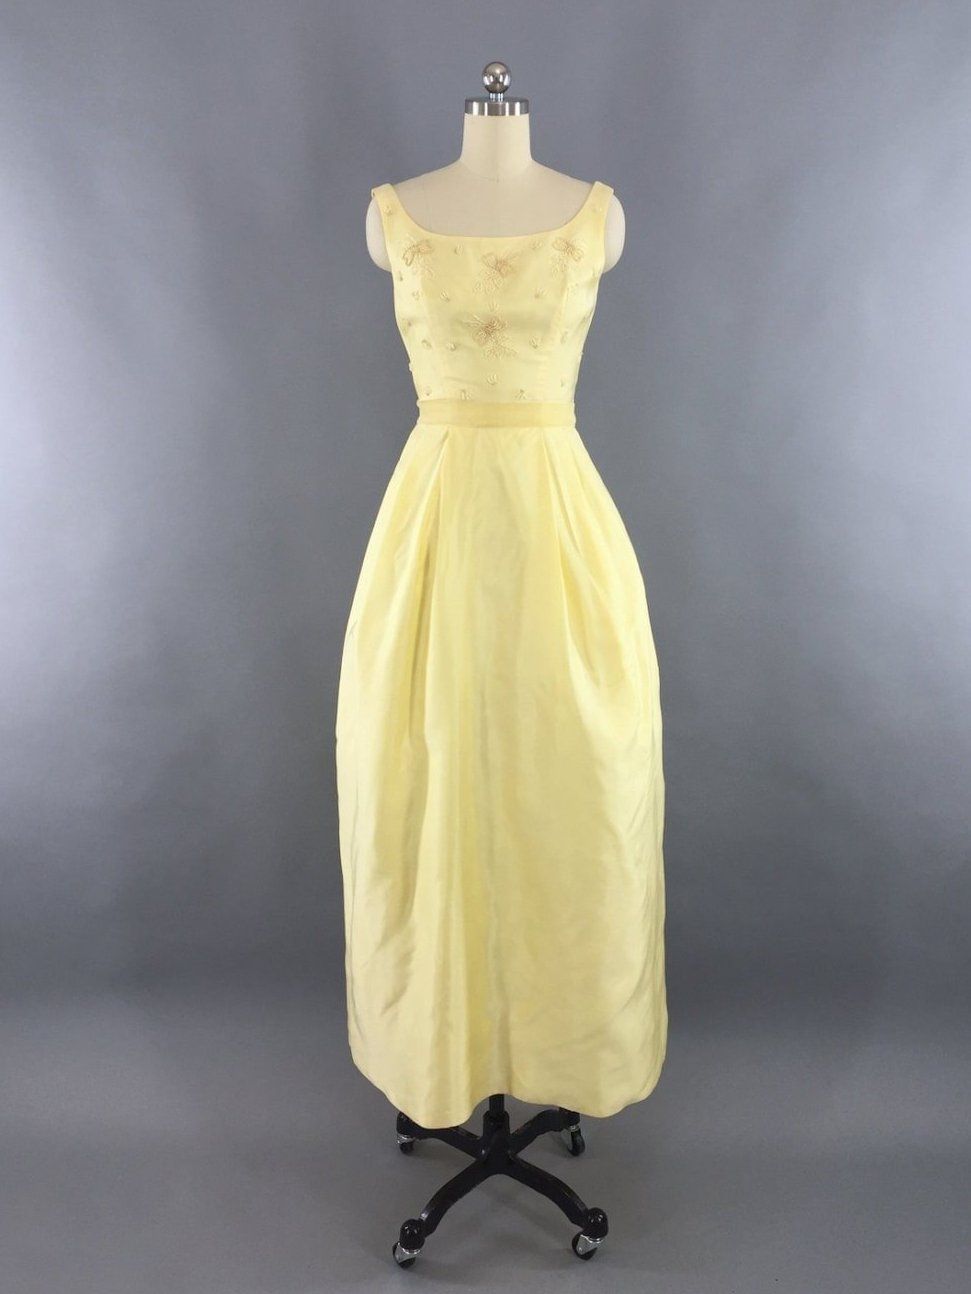 Vintage 1960s Lemon Yellow Beaded Gown Maxi Dress Dress ThisBlueBird